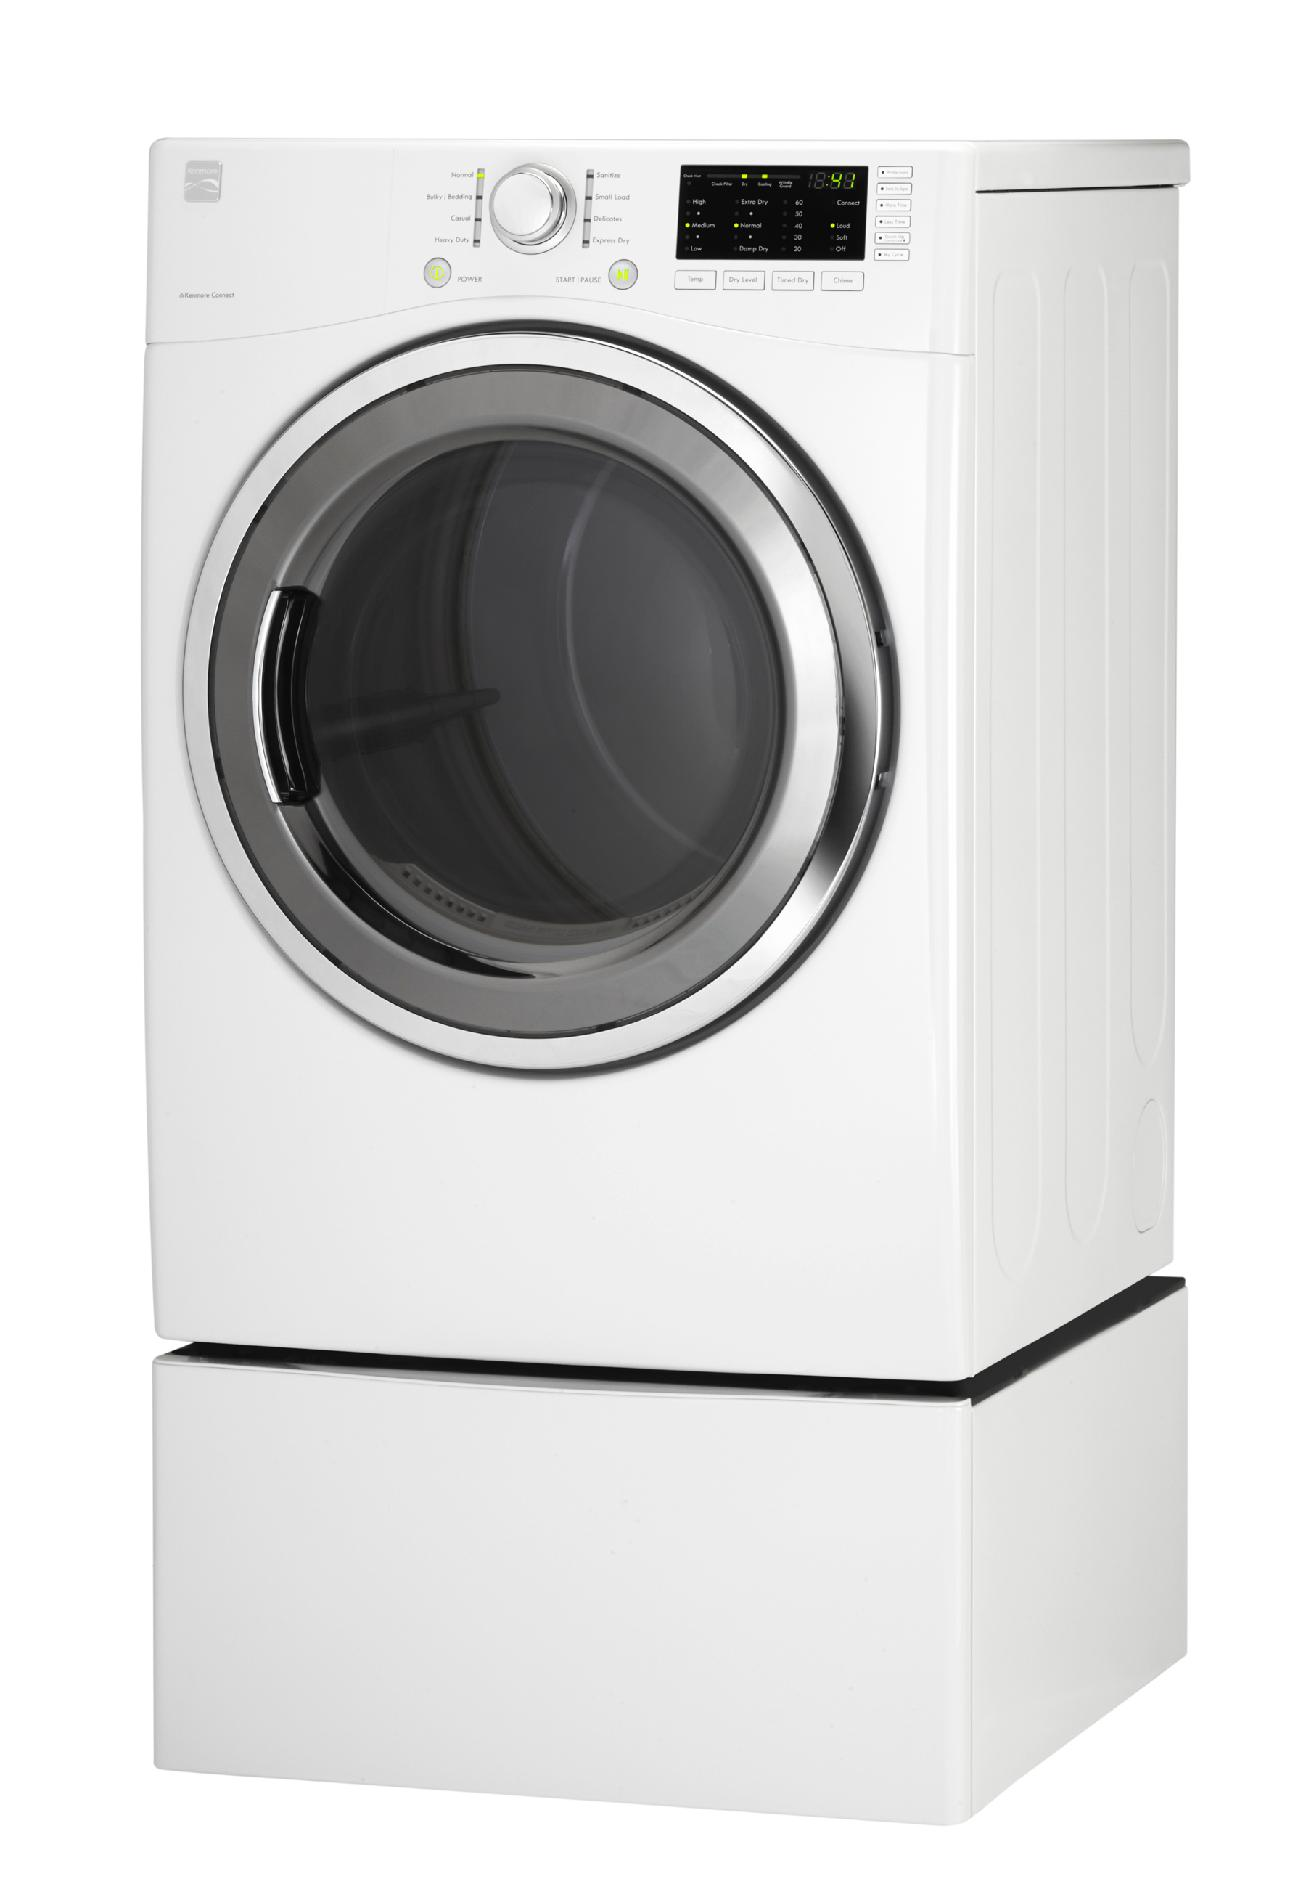 Kenmore 7.3 cu. ft. Electric Dryer  - White